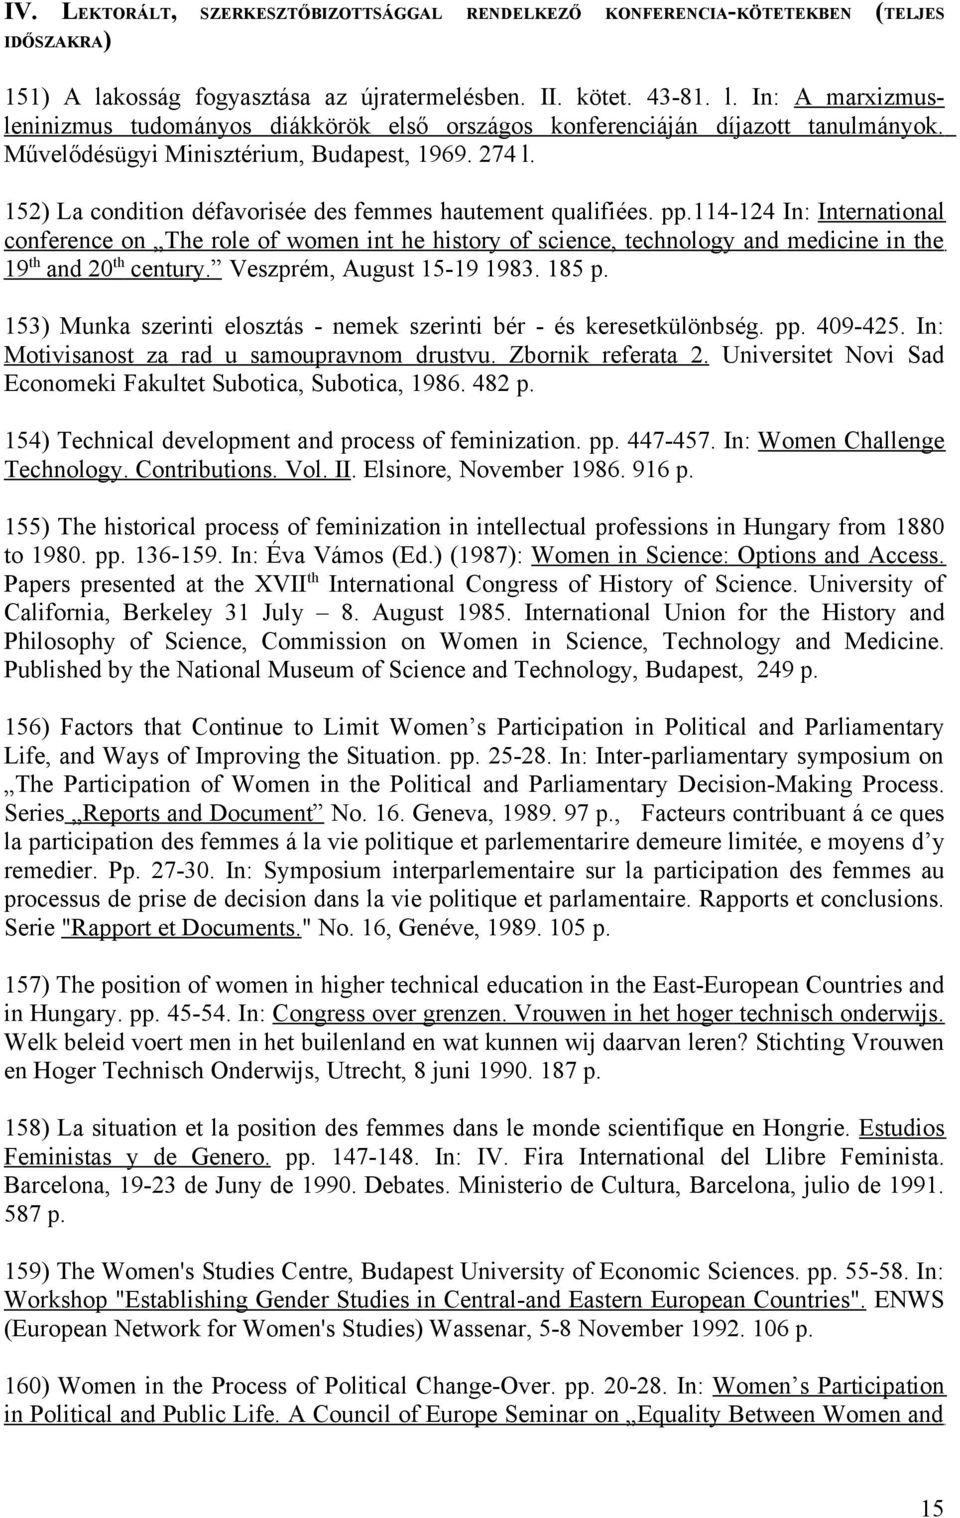 114-124 In: International conference on The role of women int he history of science, technology and medicine in the 19 th and 20 th century. Veszprém, August 15-19 1983. 185 p.